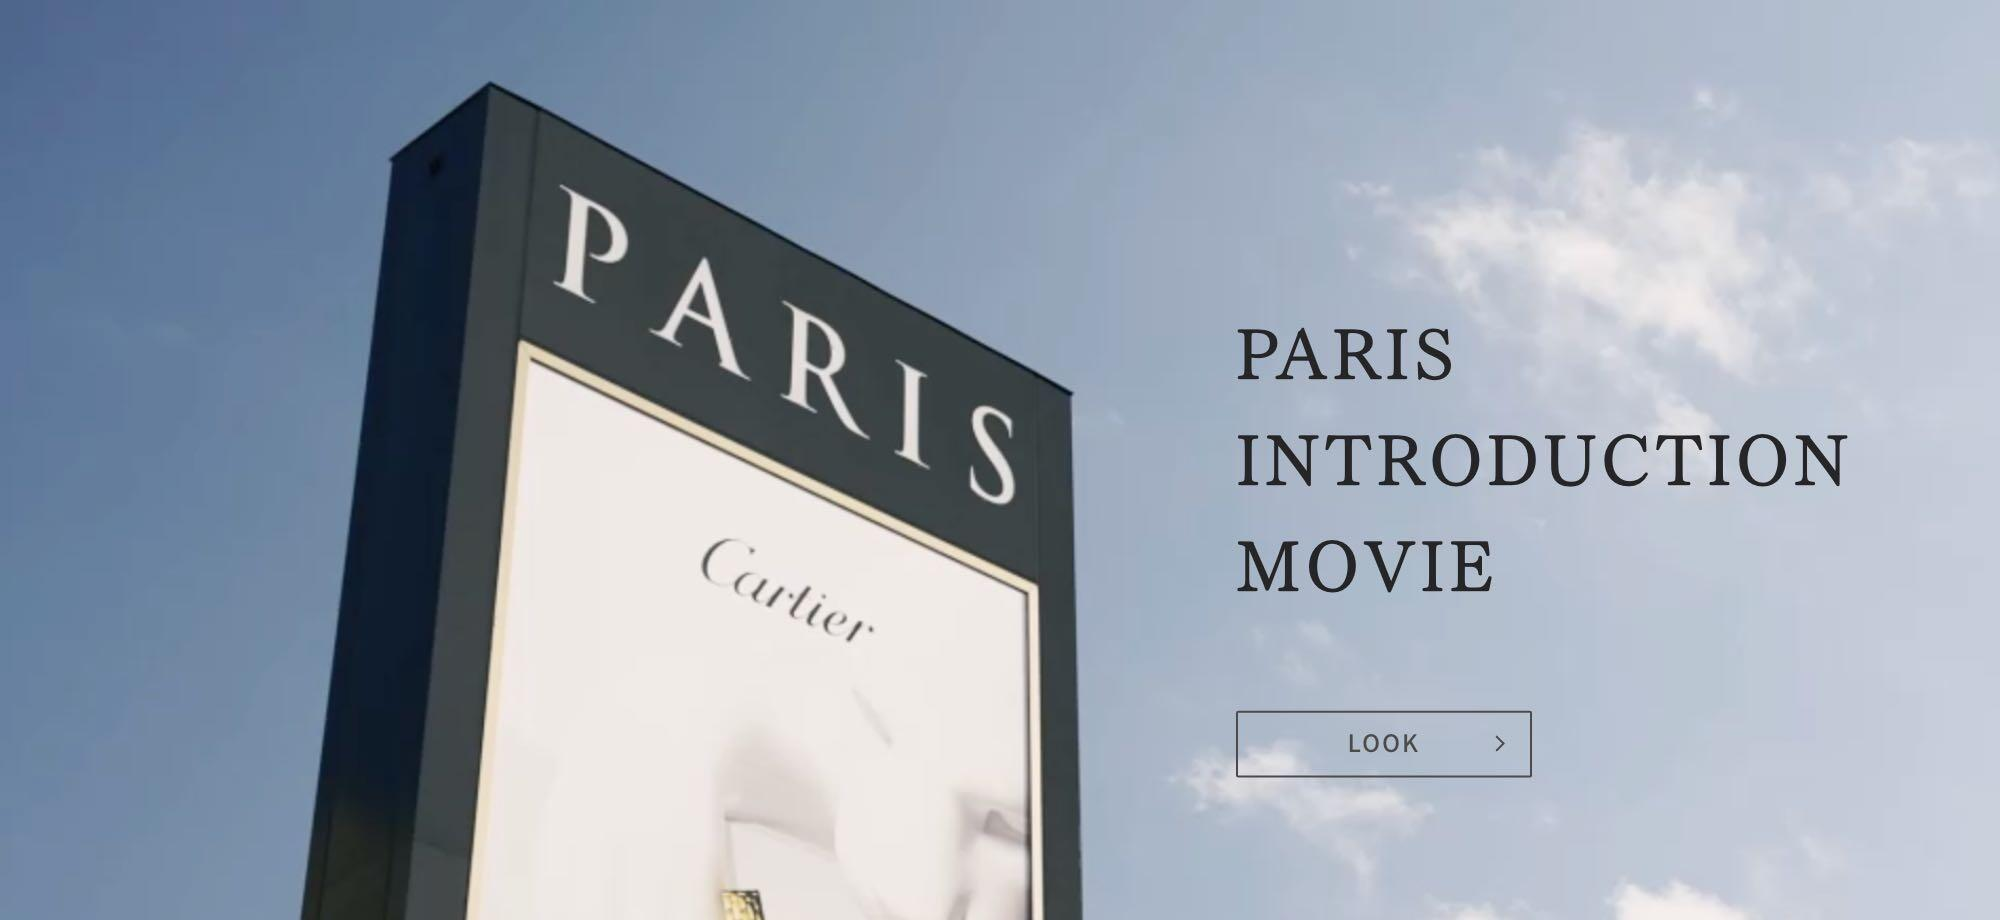 PARIS INTRODUCTION MOVIE